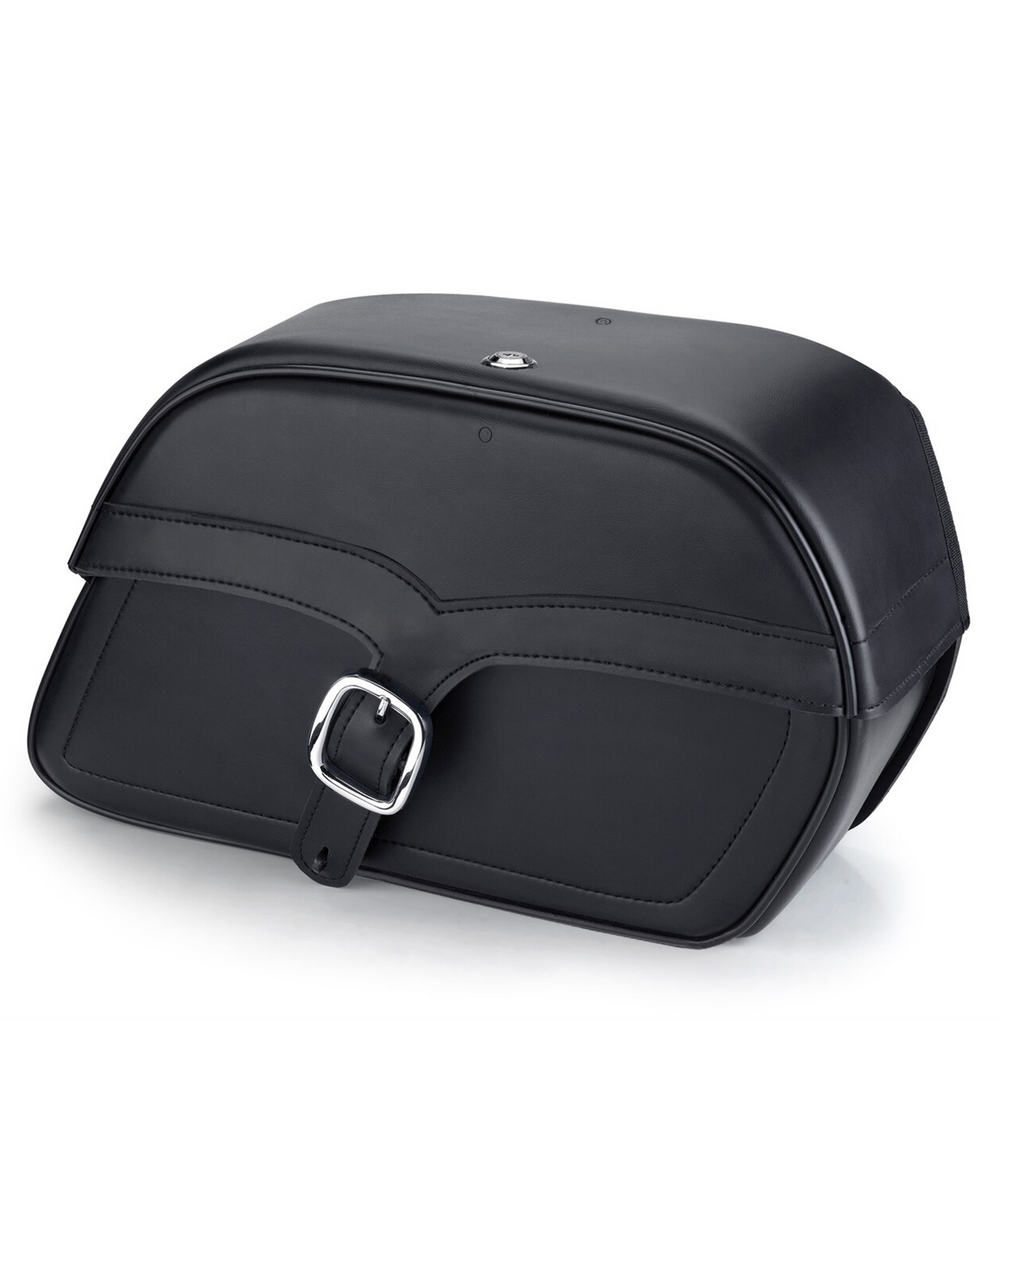 Viking Shock Cutout Single Strap Large Slanted Large Motorcycle Saddlebags For Harley Sportster Forty Eight 48 bag View